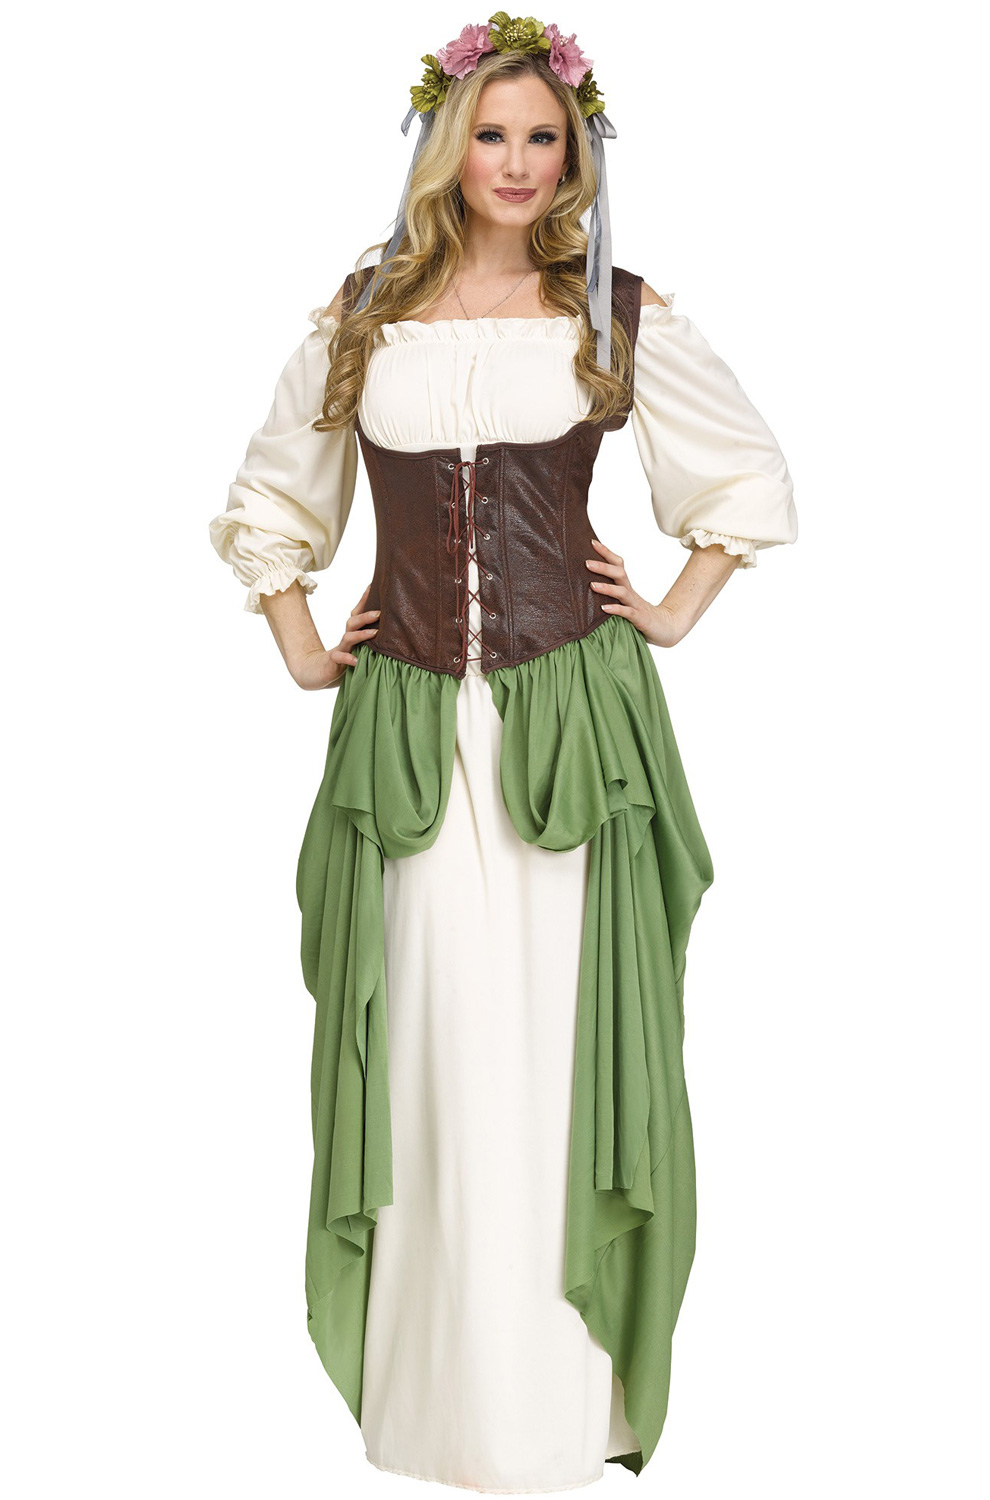 Sexy seductive serving wench costume